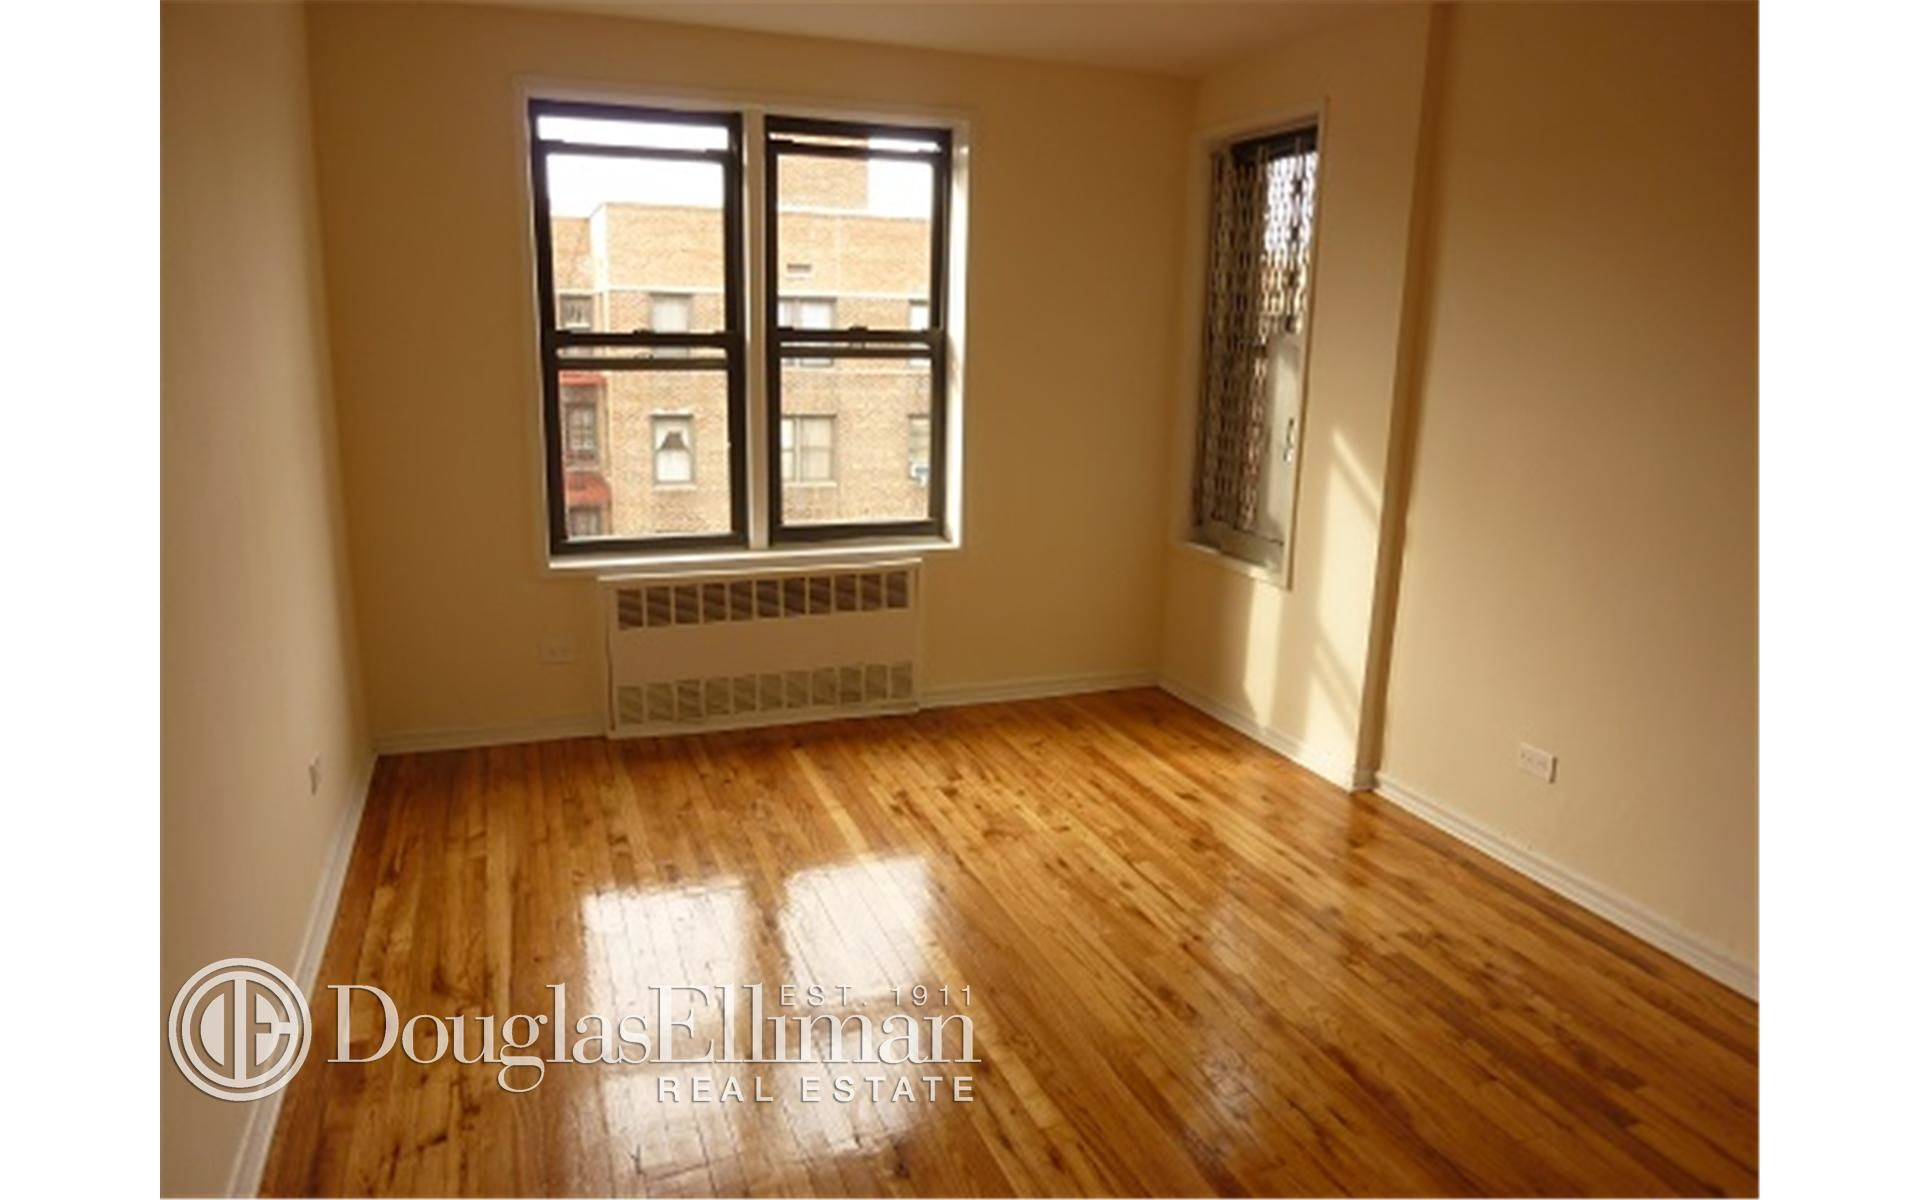 285 E 35th St, APT 7F Photo 2 - ELLIMAN-2322830